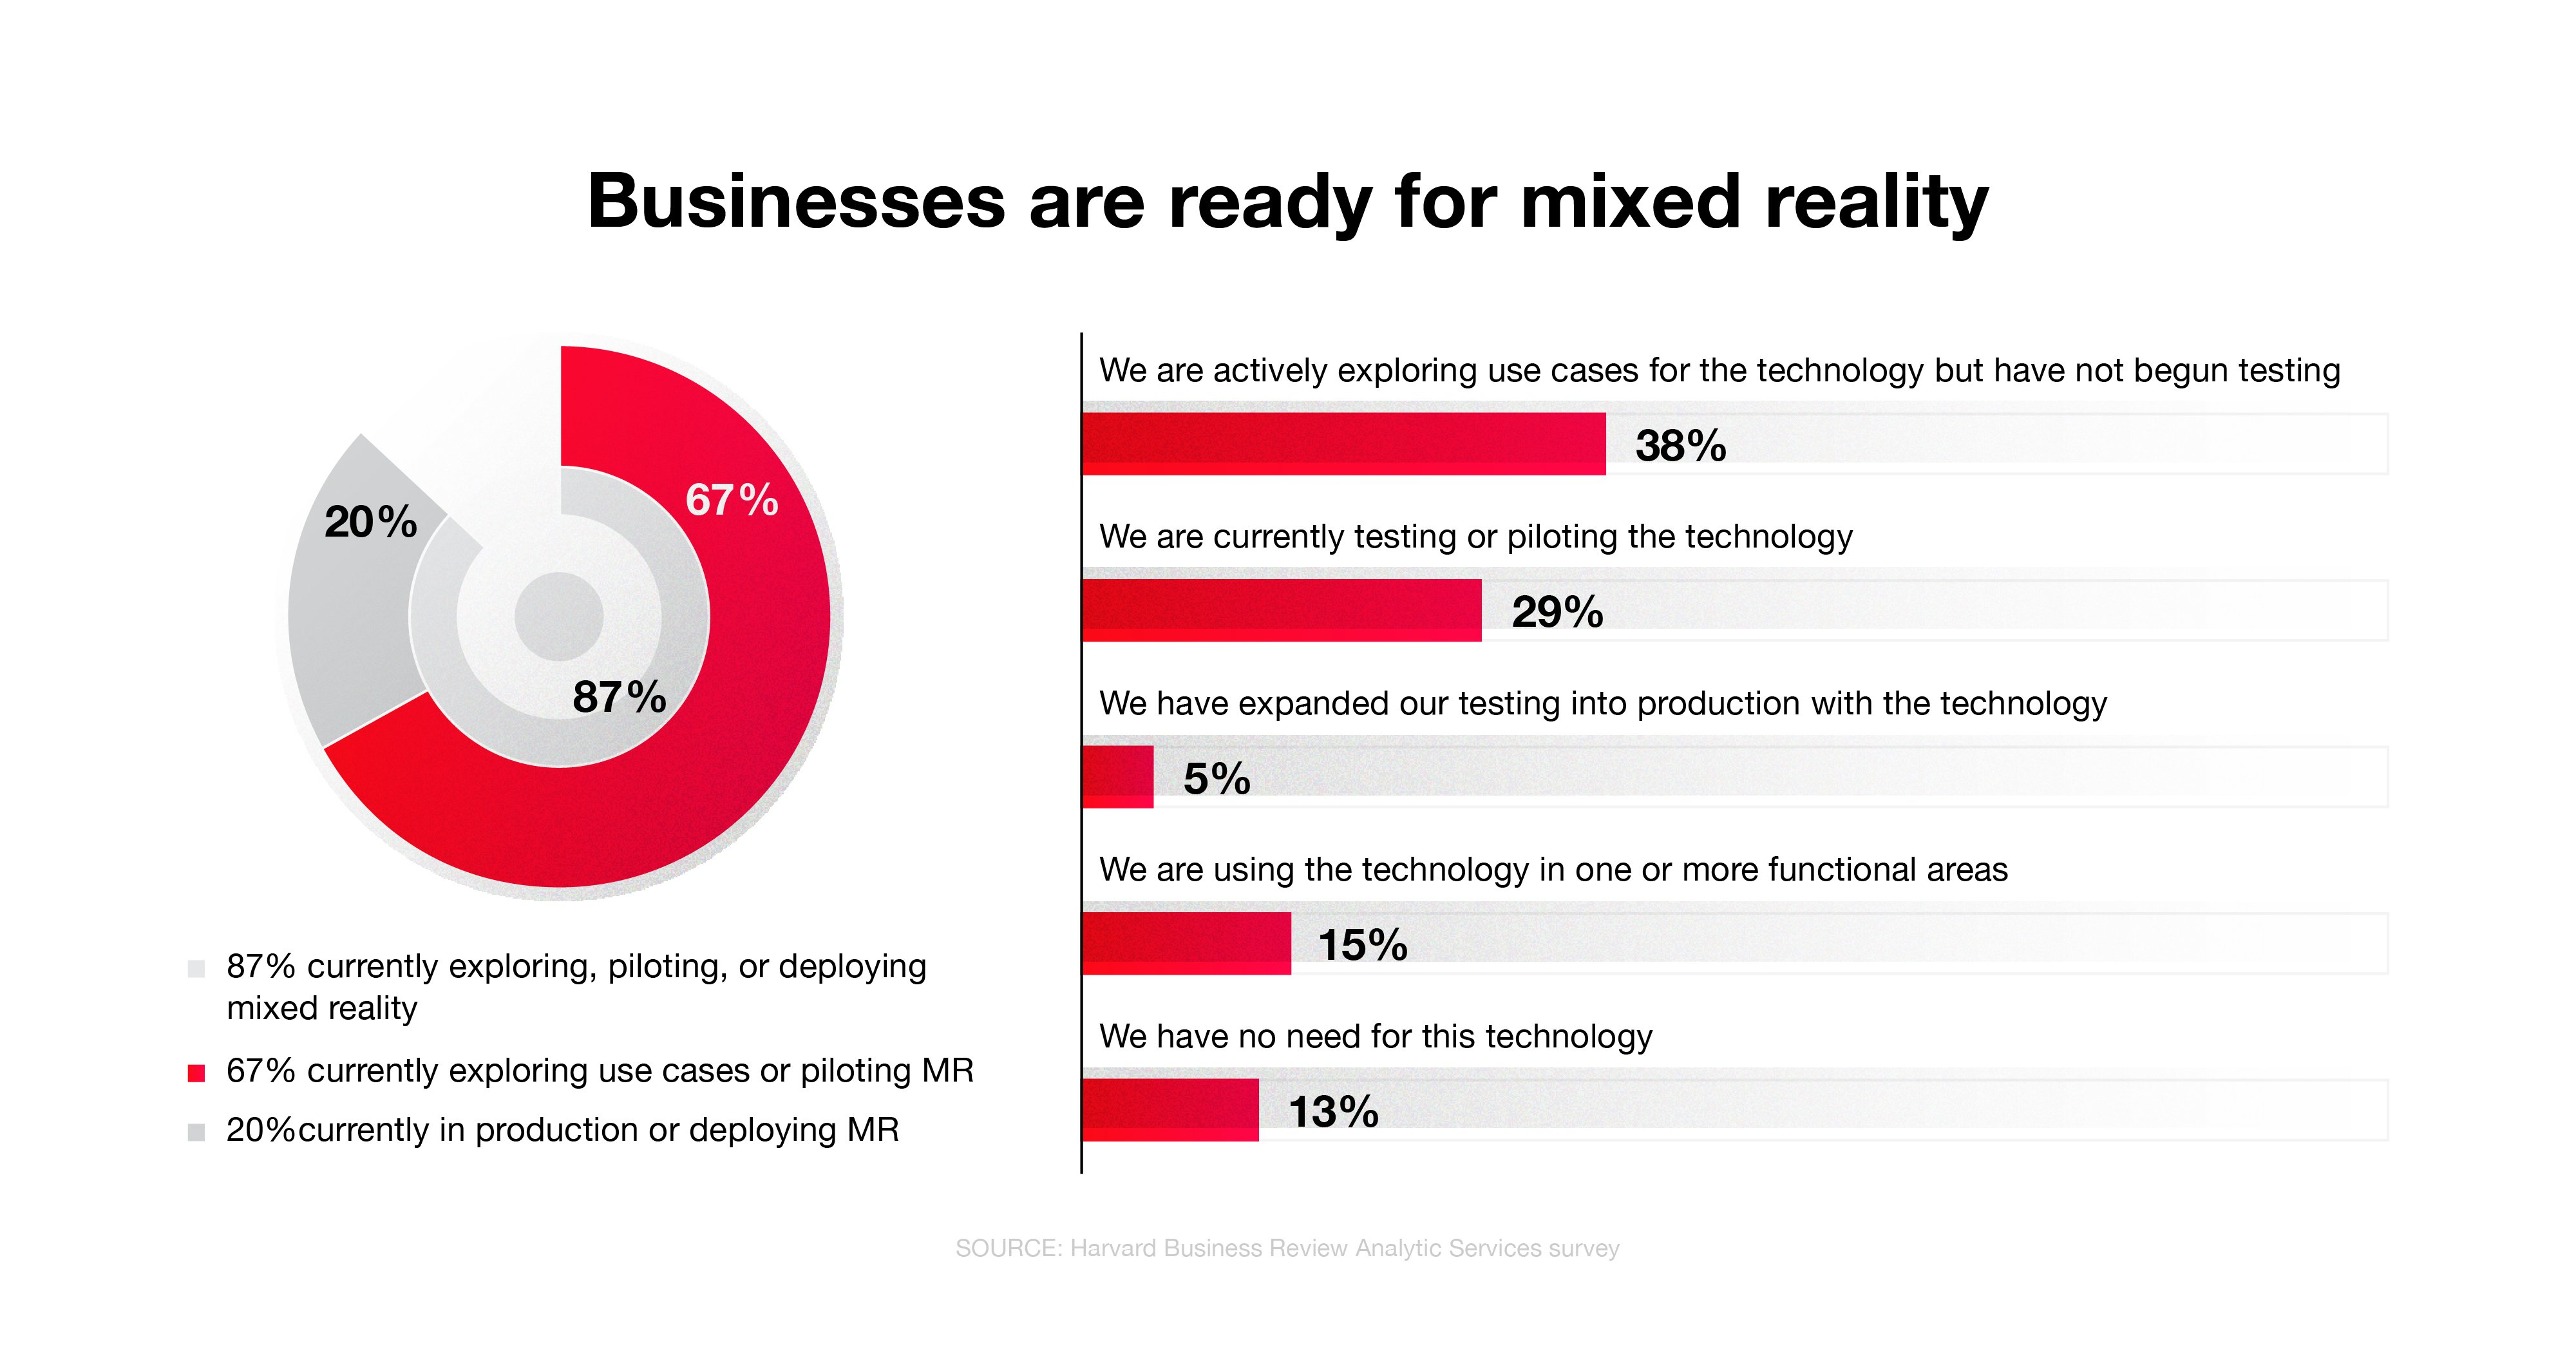 Businesses are ready for mixed reality